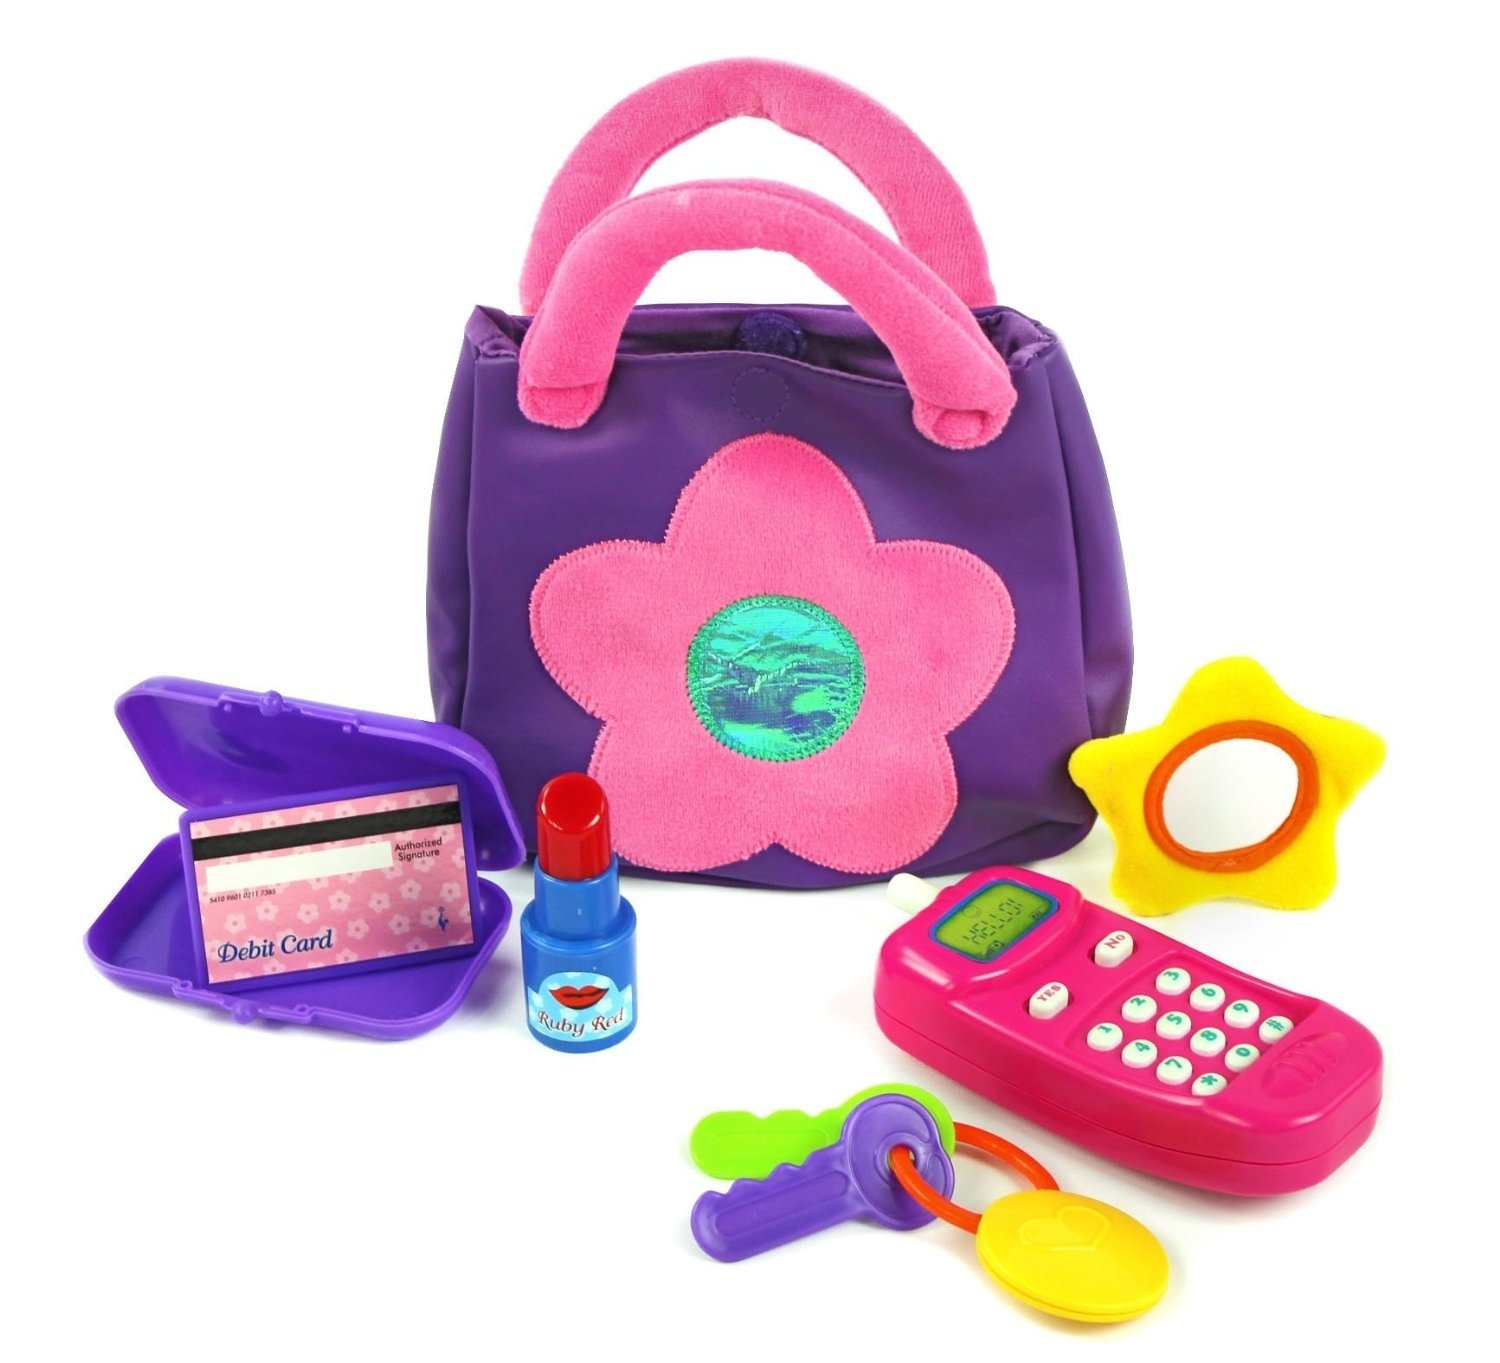 10 Nice Gift Ideas For 2 Yr Old Girl kidoozie my first purse cheap baby christmas birthday toys gift 1 2021